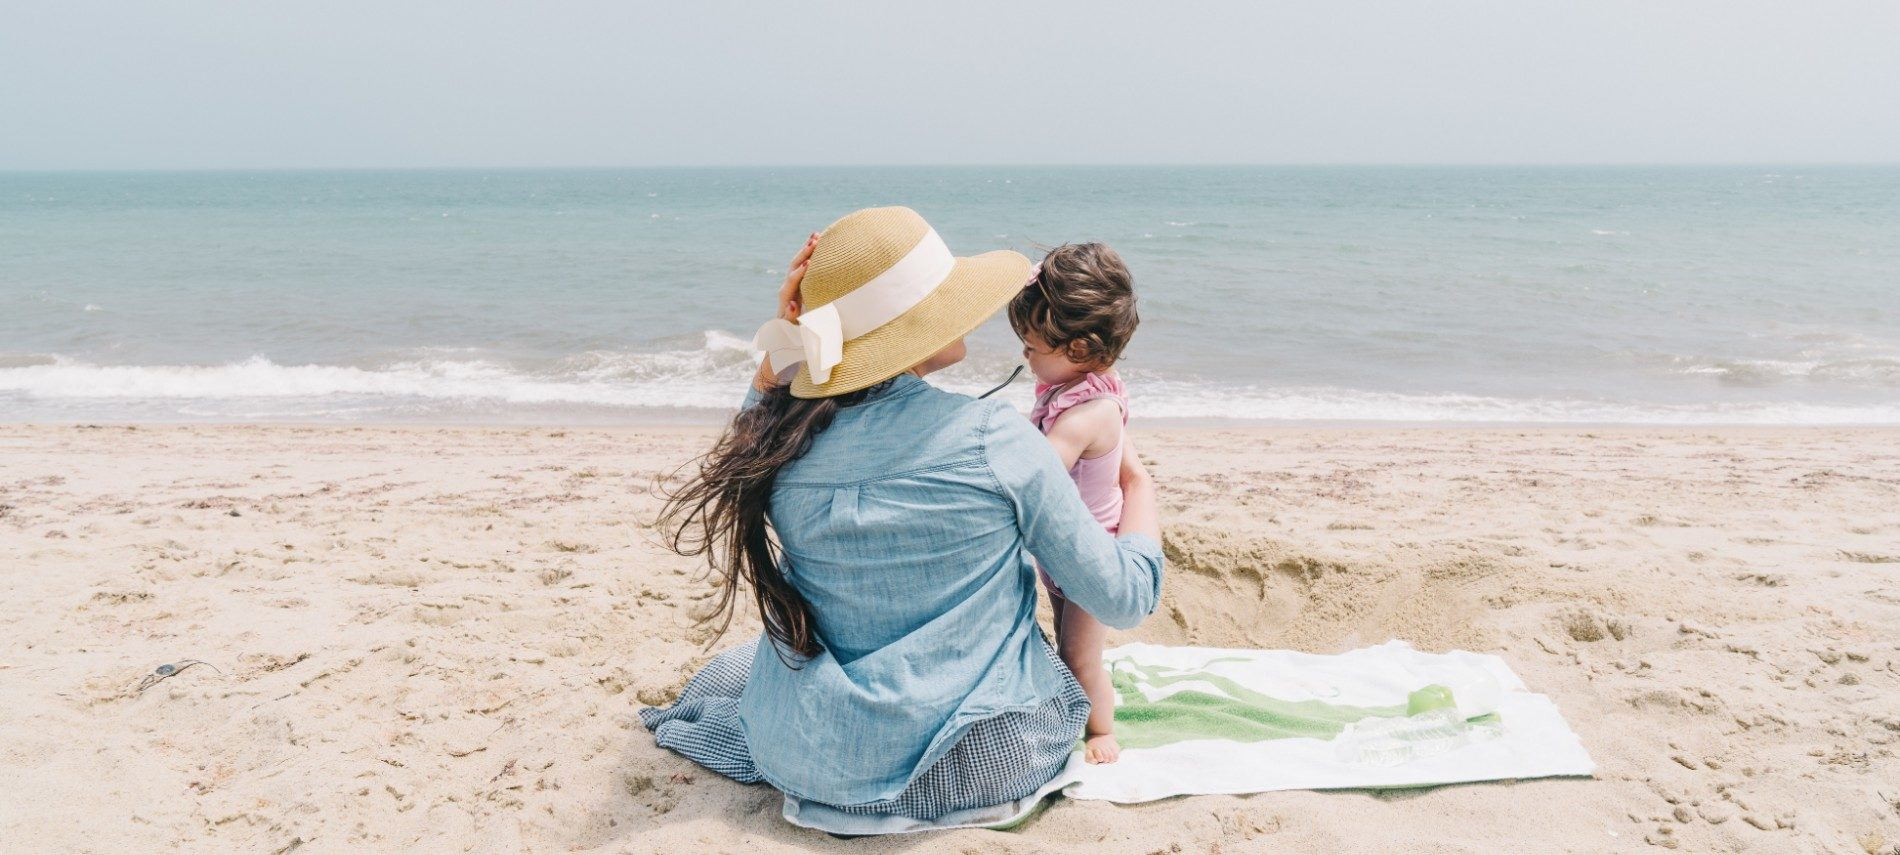 A woman in a blue shirt and hat with white ribbon sits on a beach with a young toddler at her side